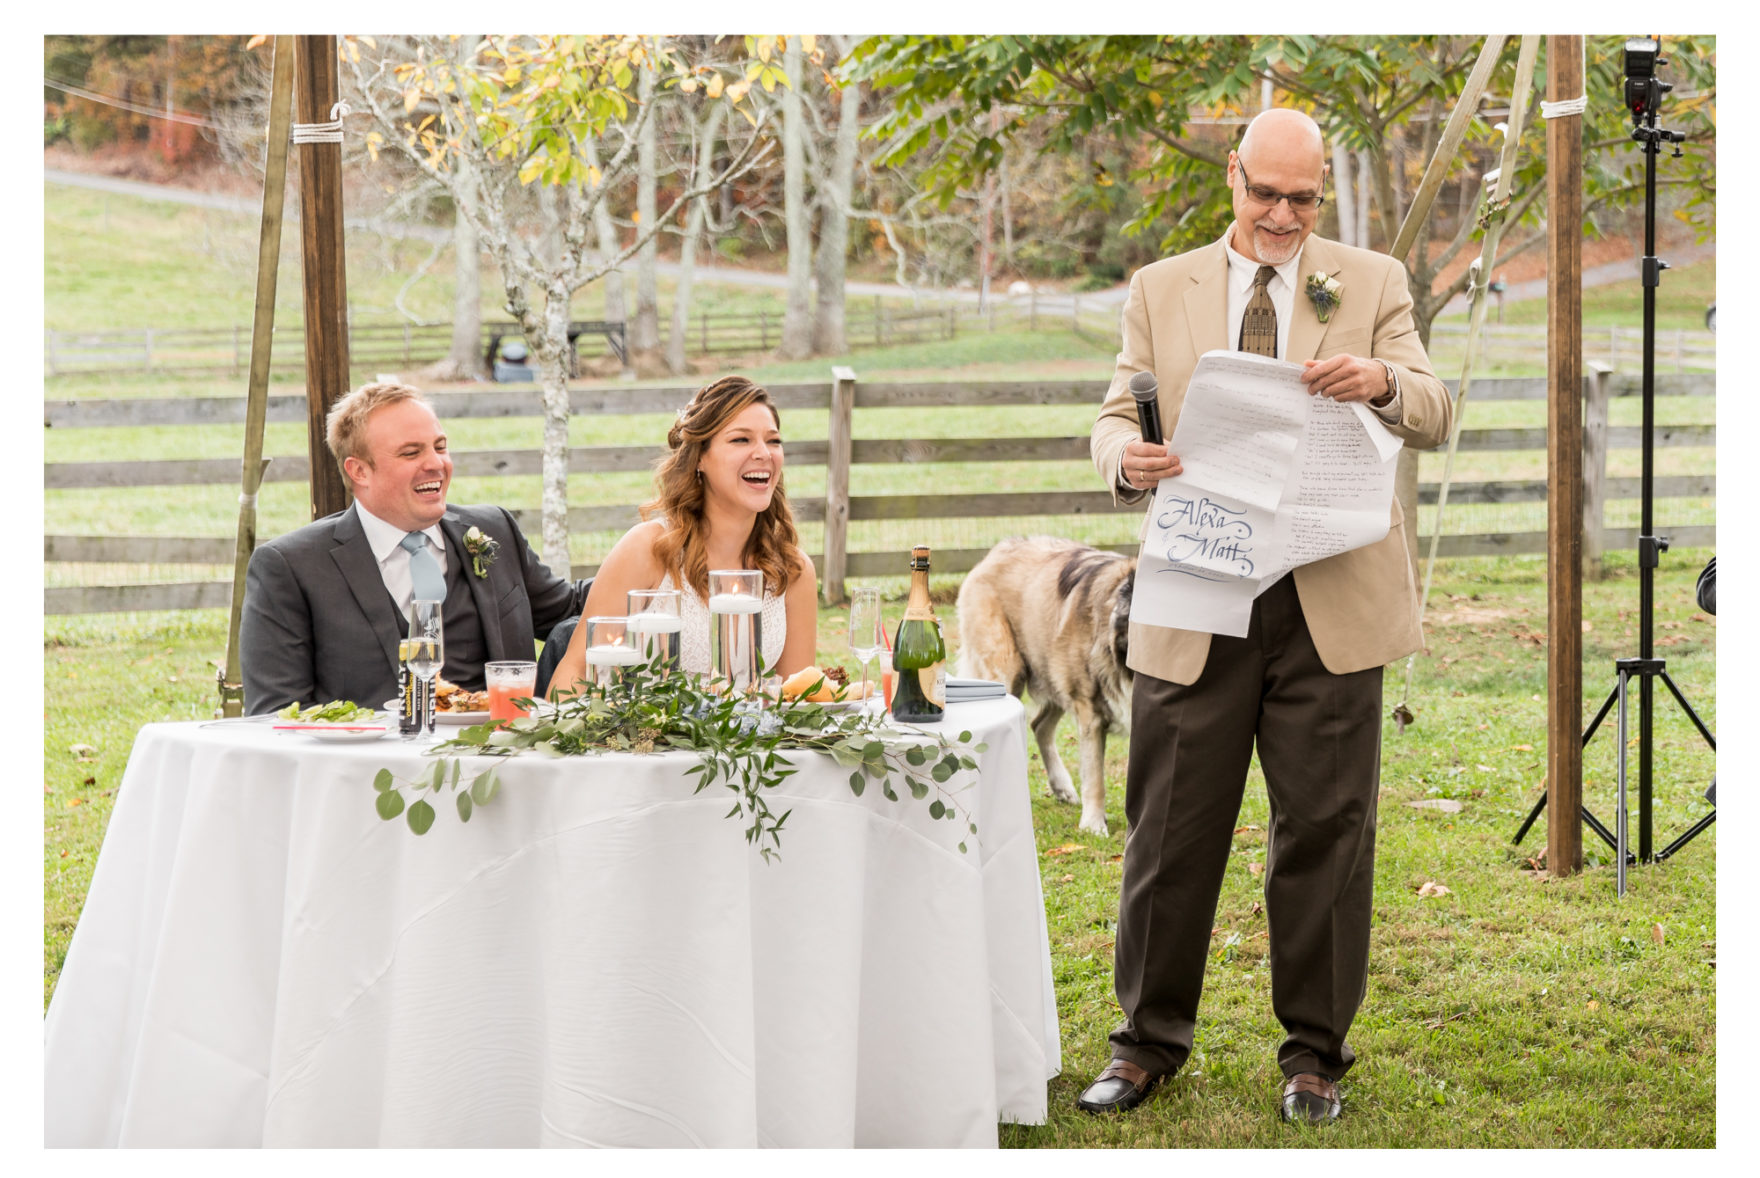 October Wedding. Farm Wedding. Fall Wedding. Frederick Wedding. Dog Wedding. Wedding Dogs. Goat Wedding. Goats. Pond. AirBnB.